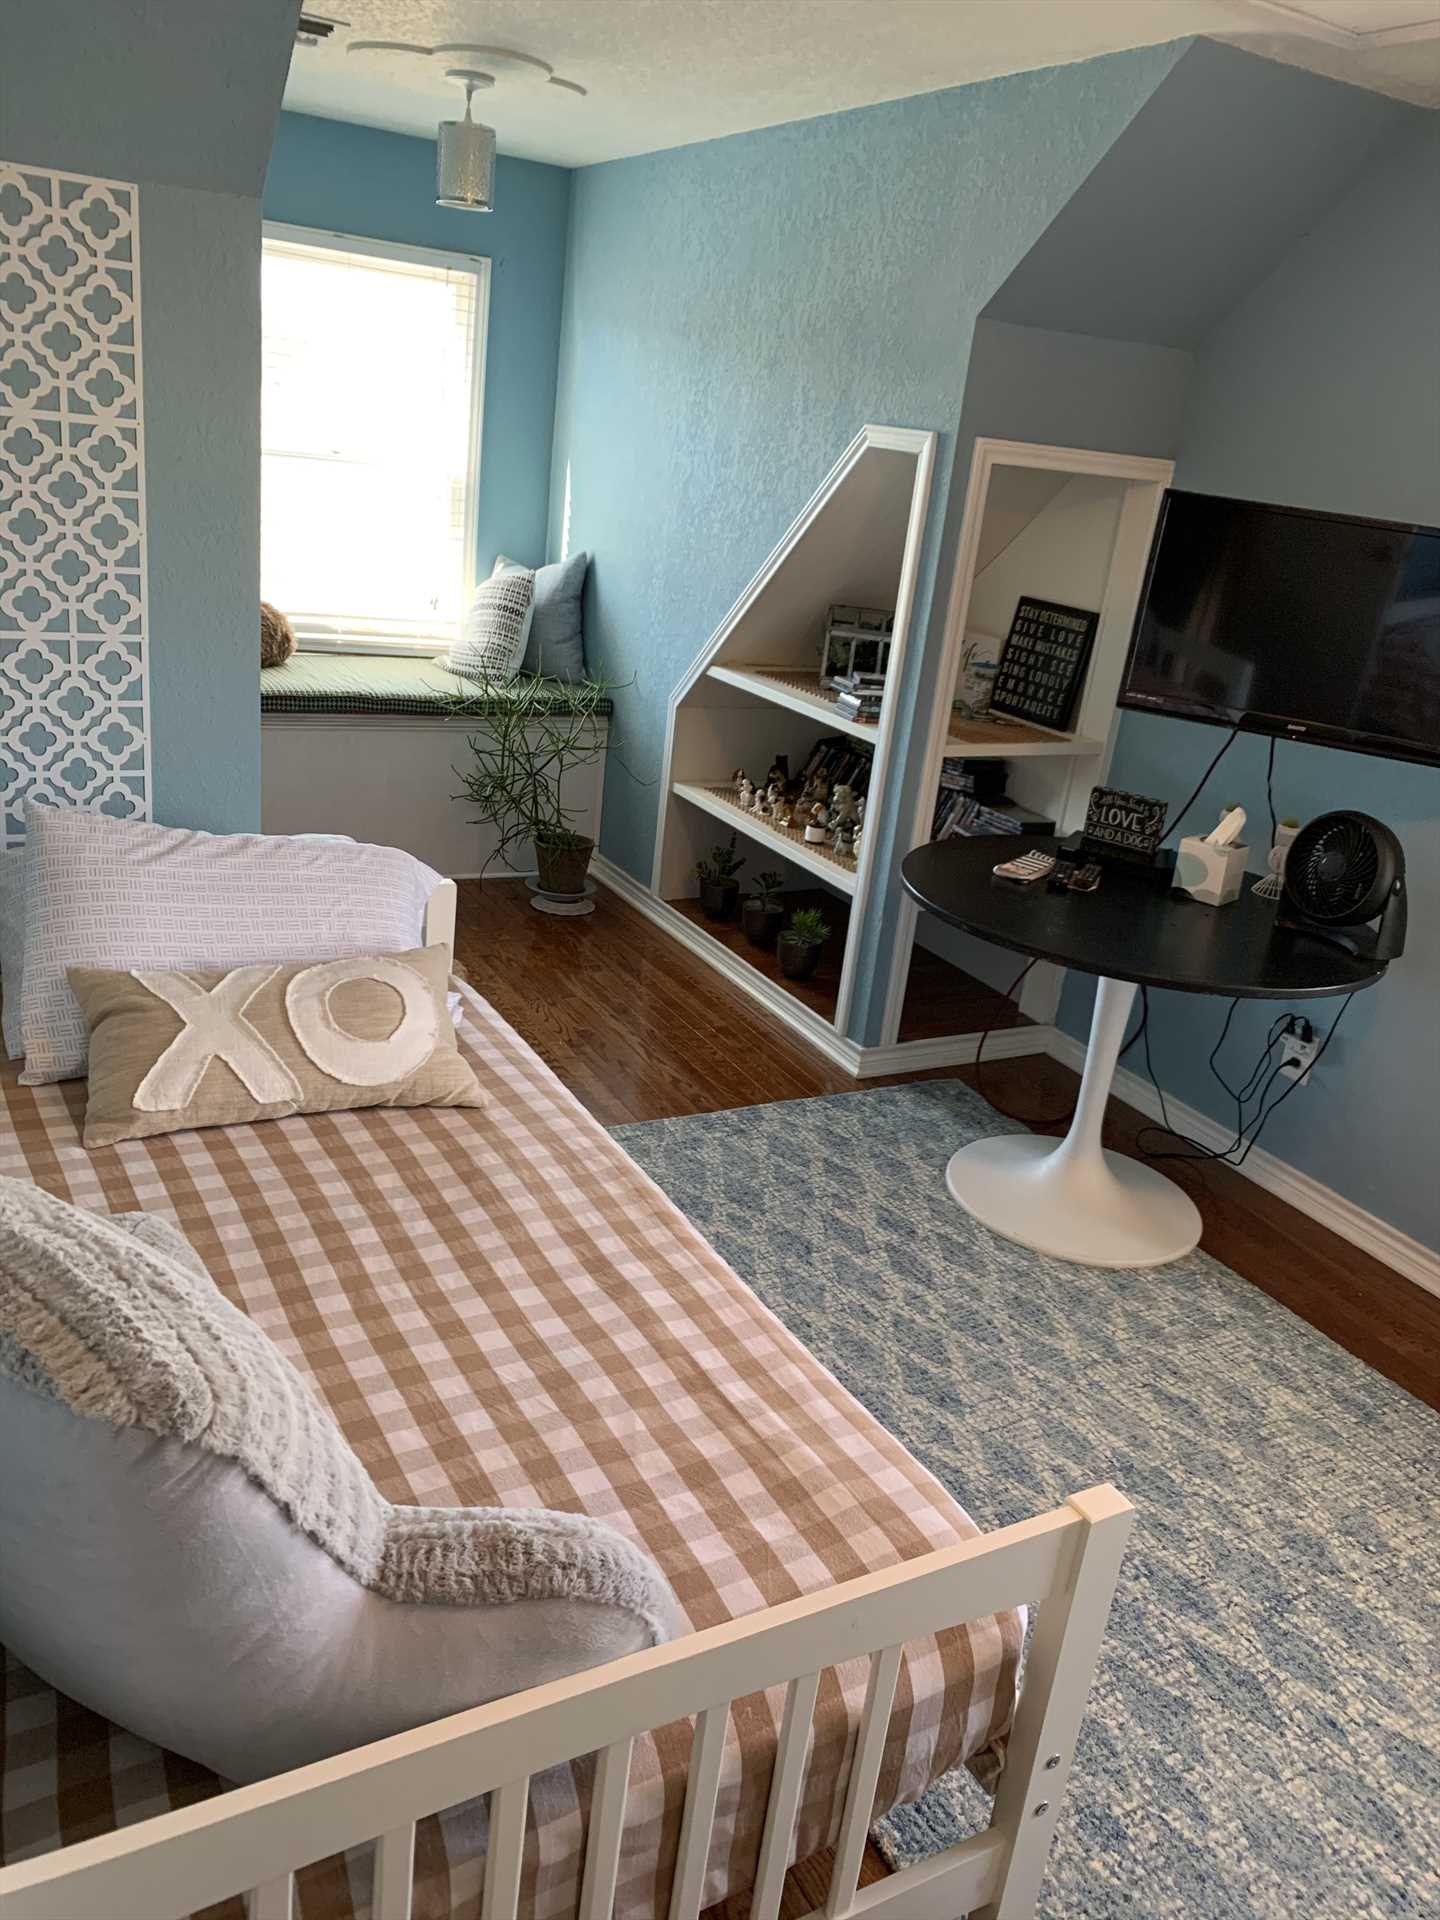 An entertainment center and reading nook are fun extras in the second bedroom, and fresh bed linens are supplied for all our guests.